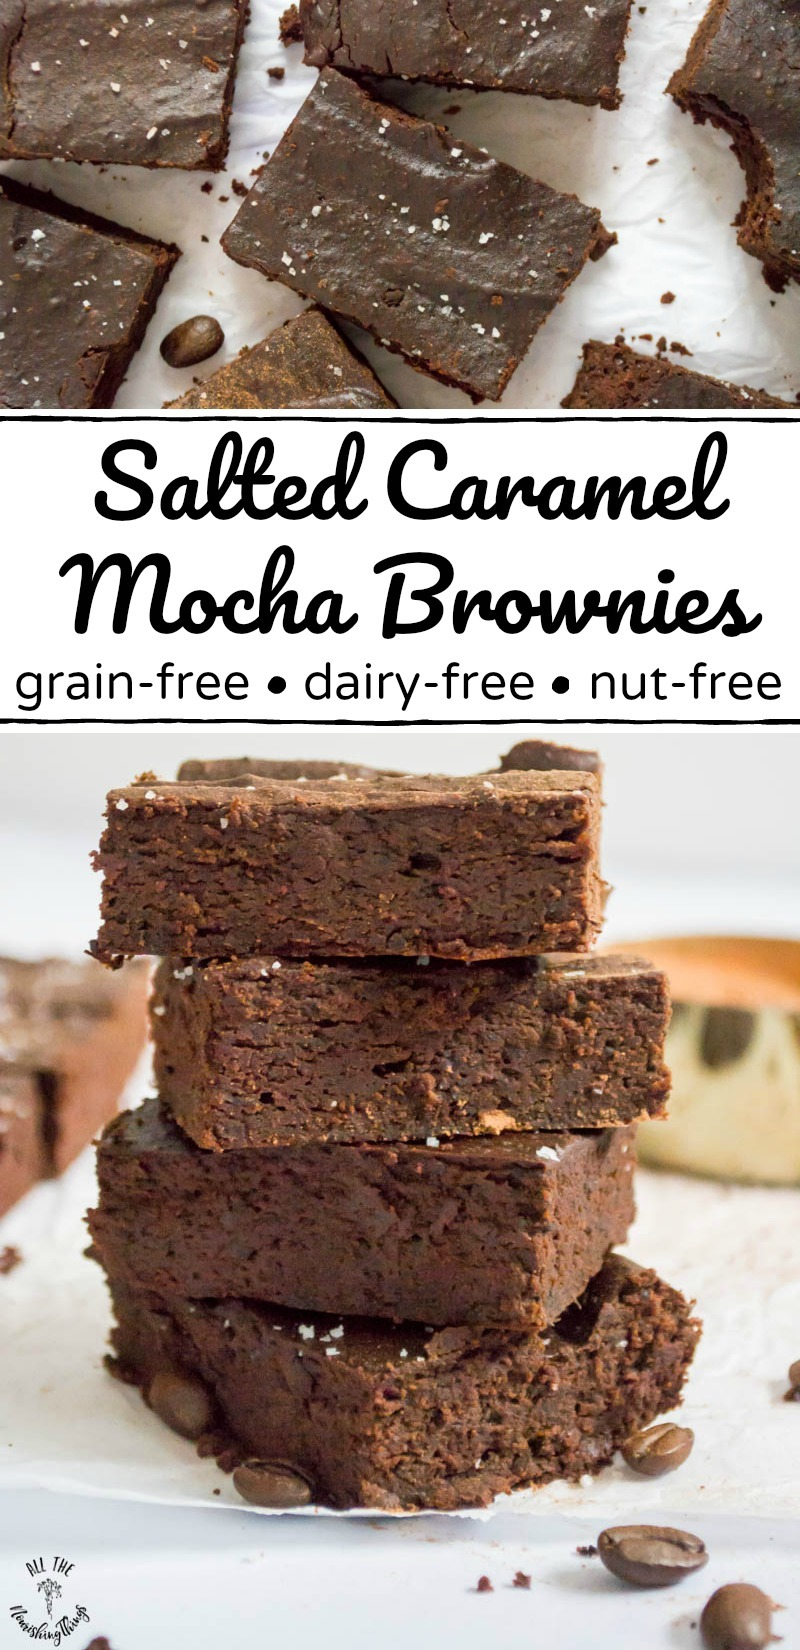 collage of 2 images of grain-free dairy-free salted caramel mocha brownies with text overlay between the images